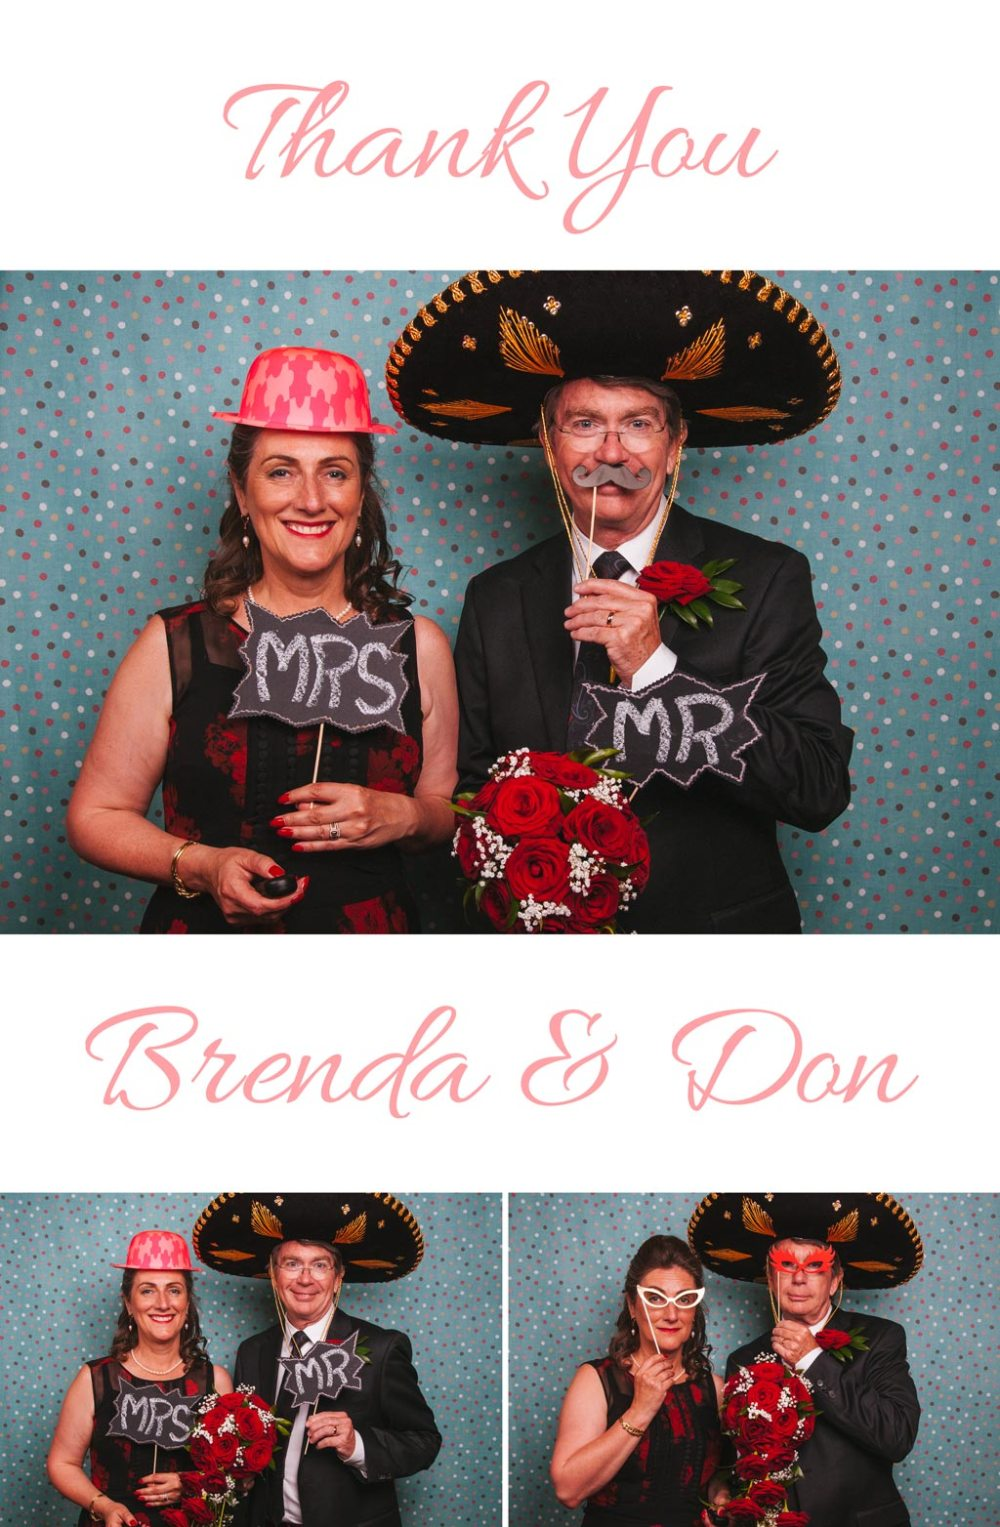 english-american-wedding-york-yorkshire-parsonage-hotel-brenda-don (137)